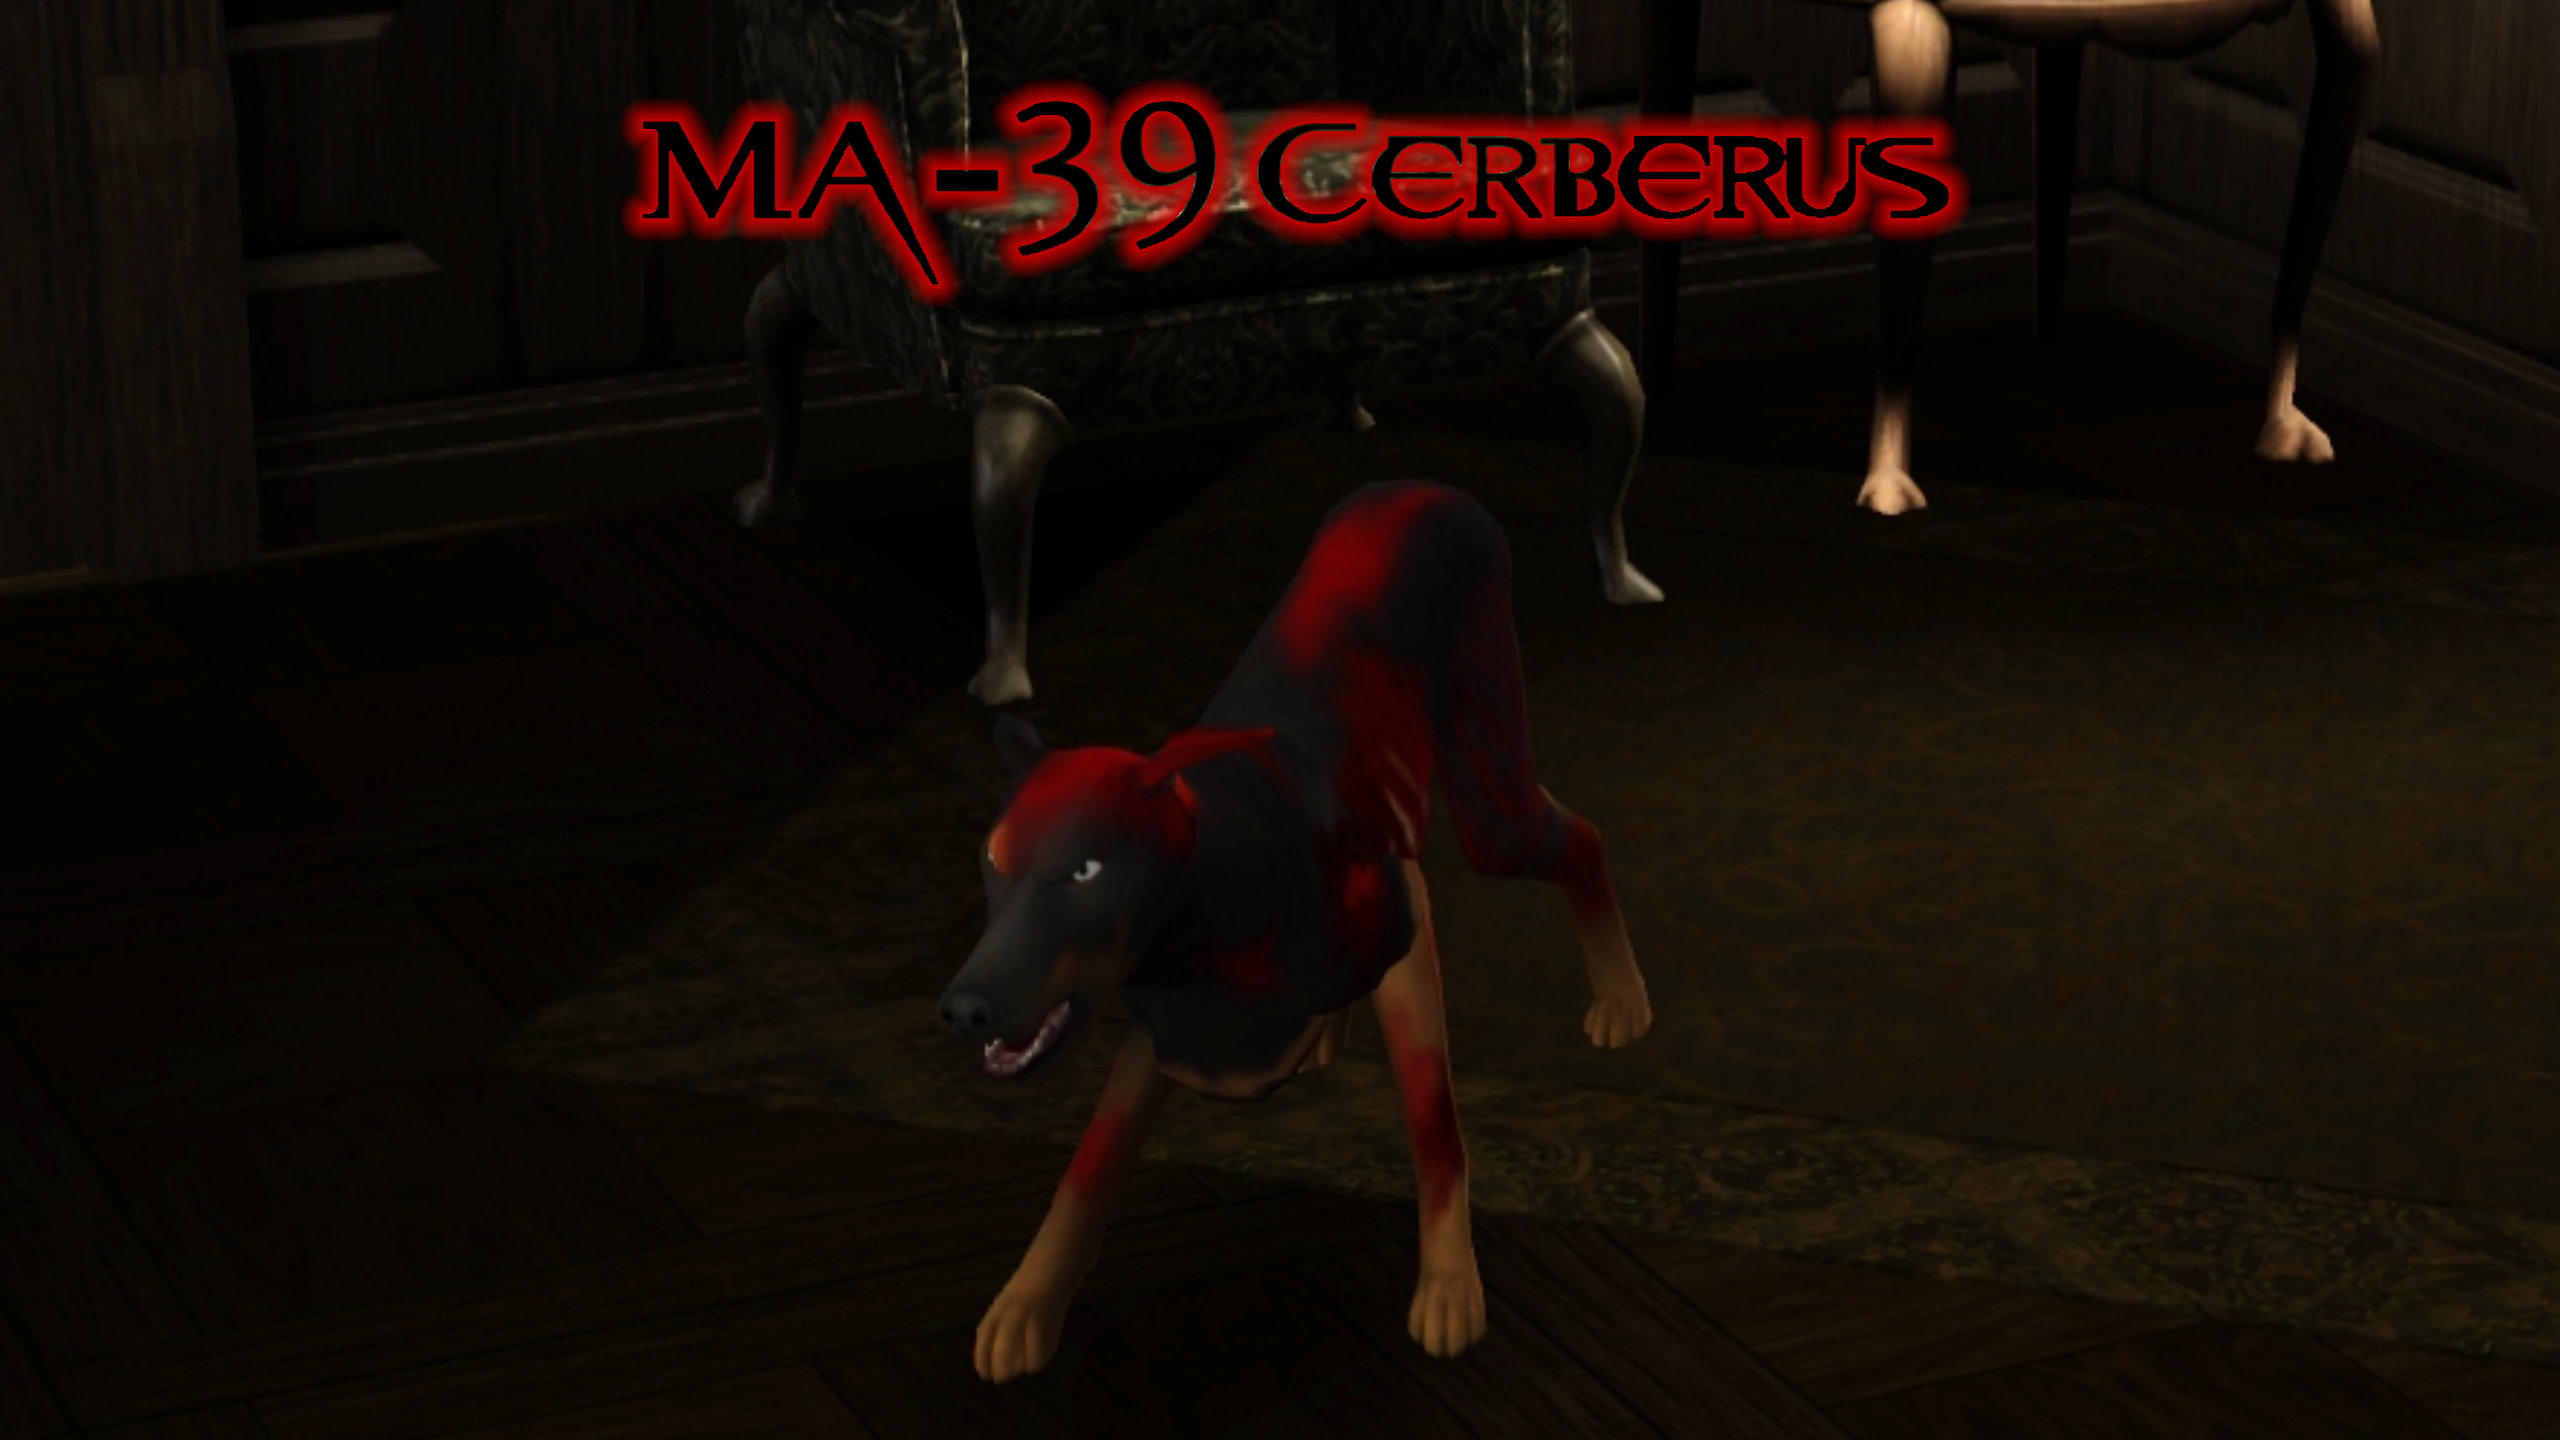 MA-39 Cerberus by Tanis